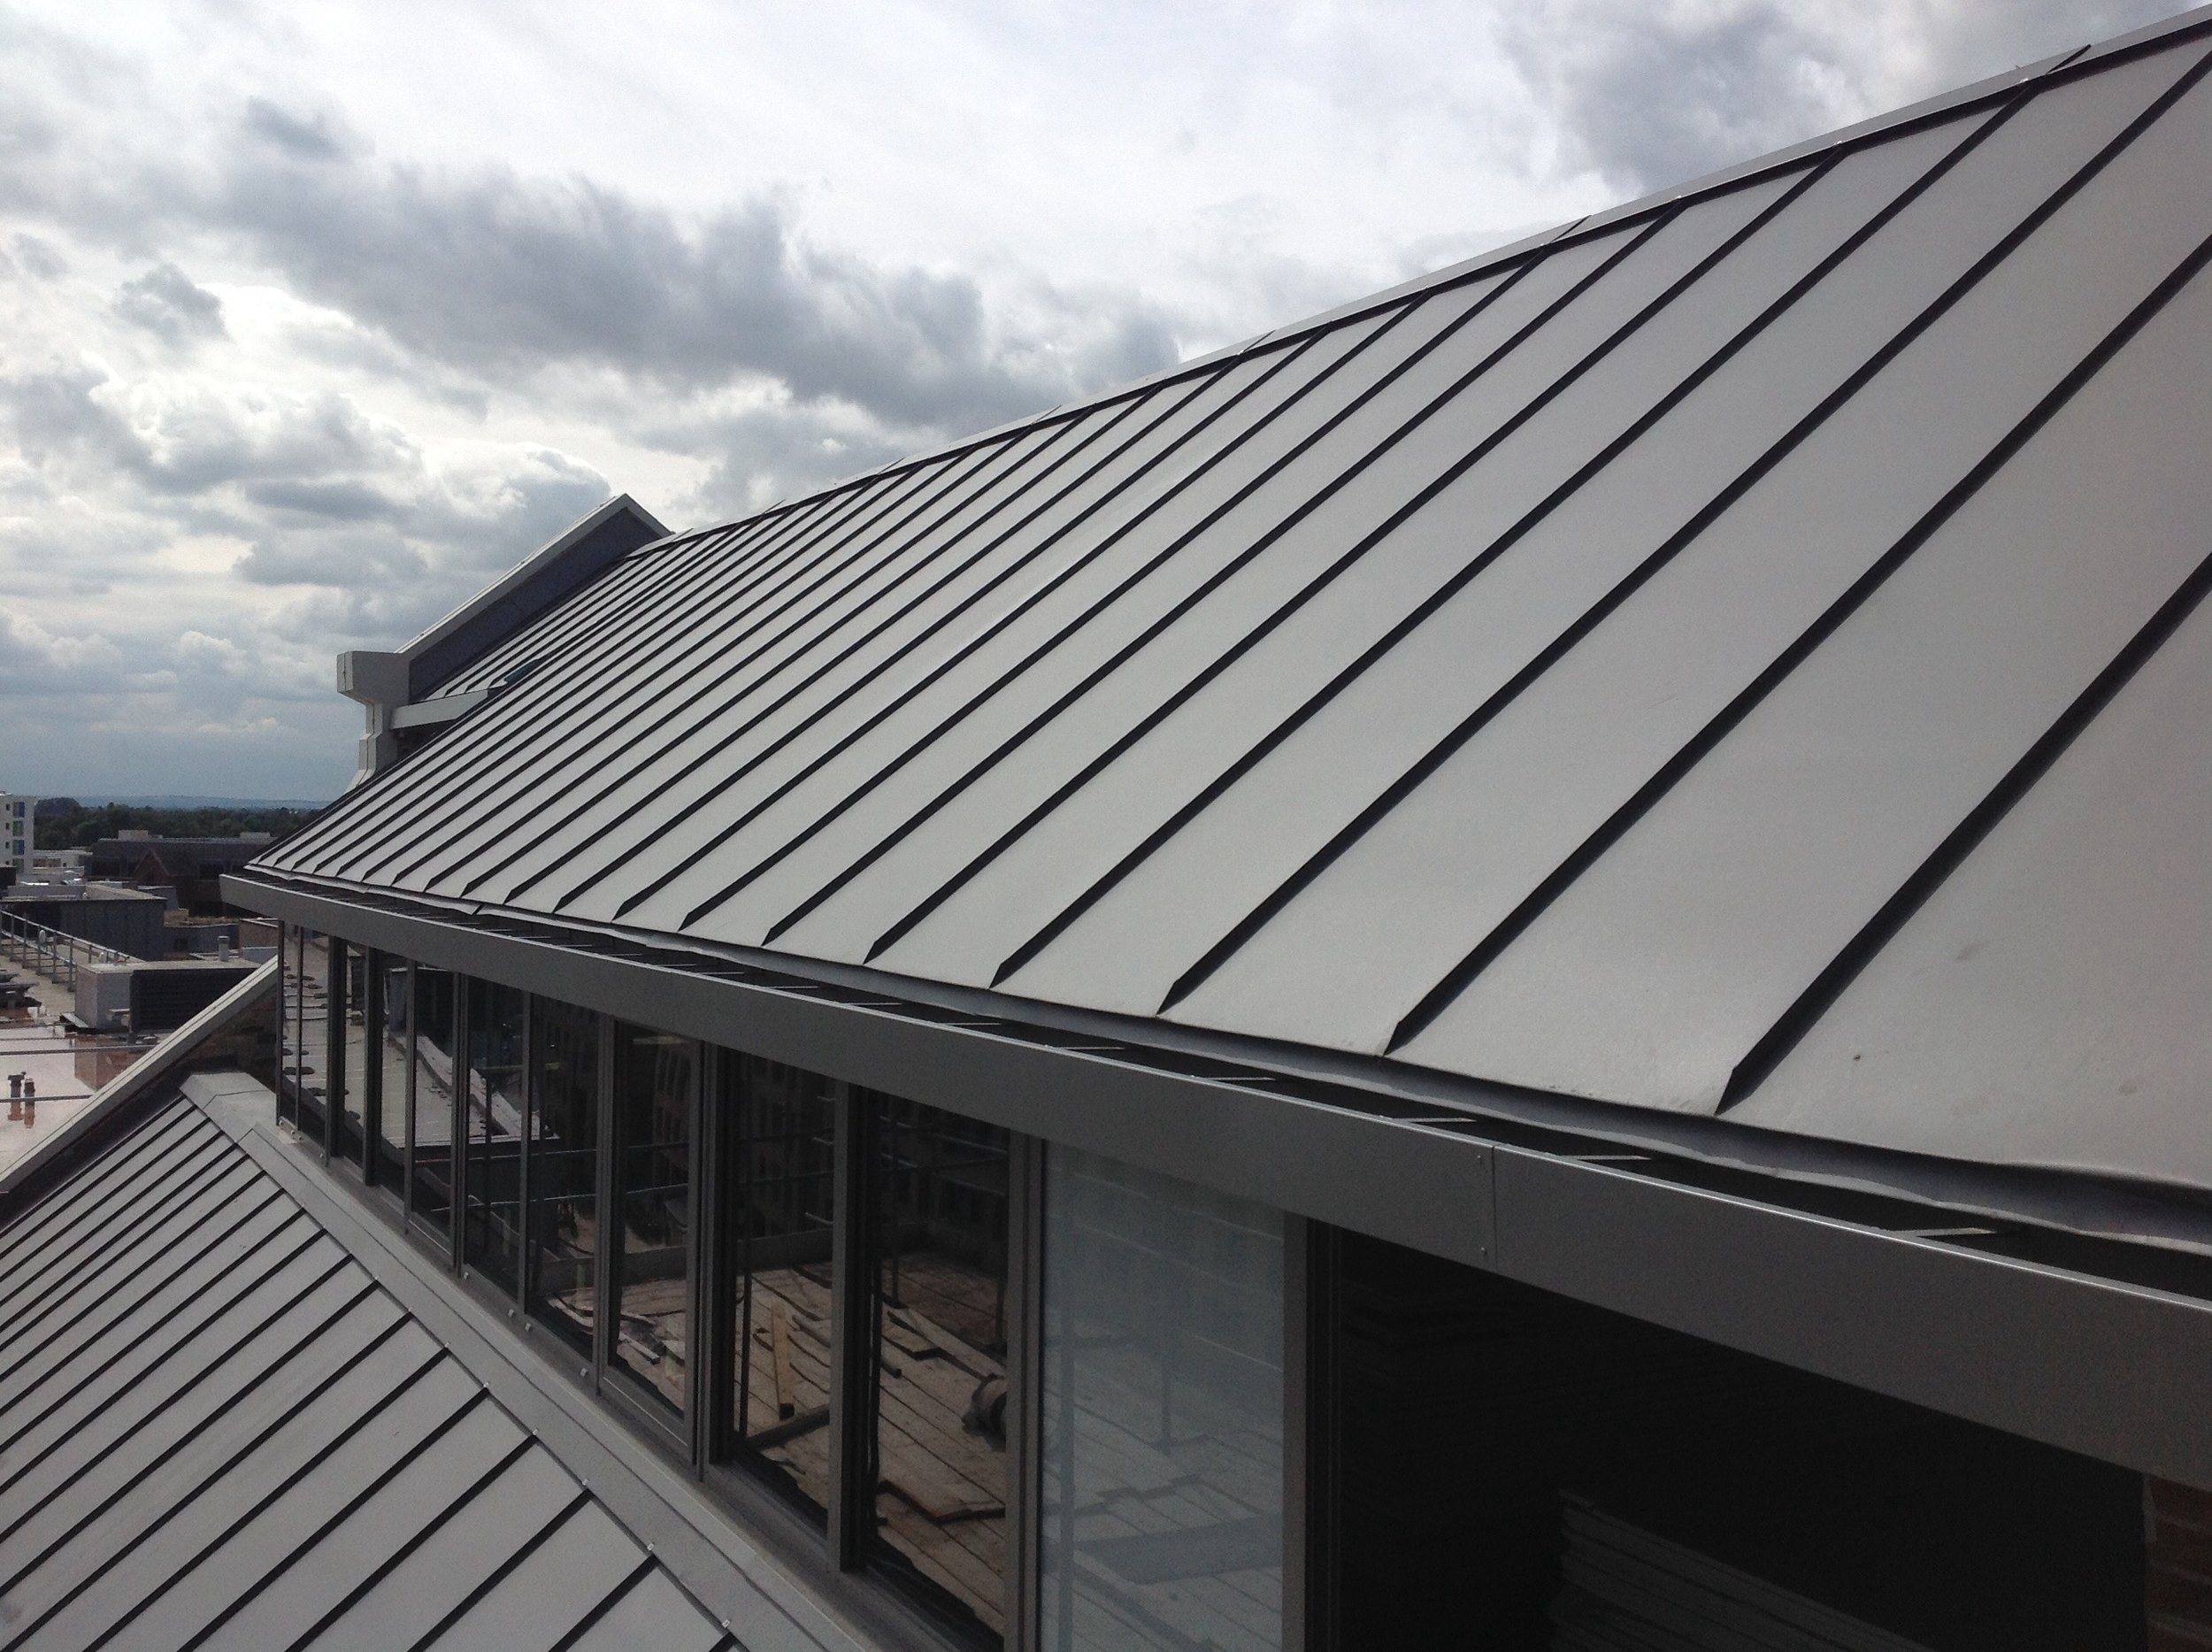 Distinctive appearance - whether you are an architect, specifier, developer or home owner, GreenCoat PLX will ensure your project stands apart …… market-leading material warranties, simple and straight-forward installation details which are supplied to your experienced metal roofer all help ensure you achieve a great finish to your roof or façade.